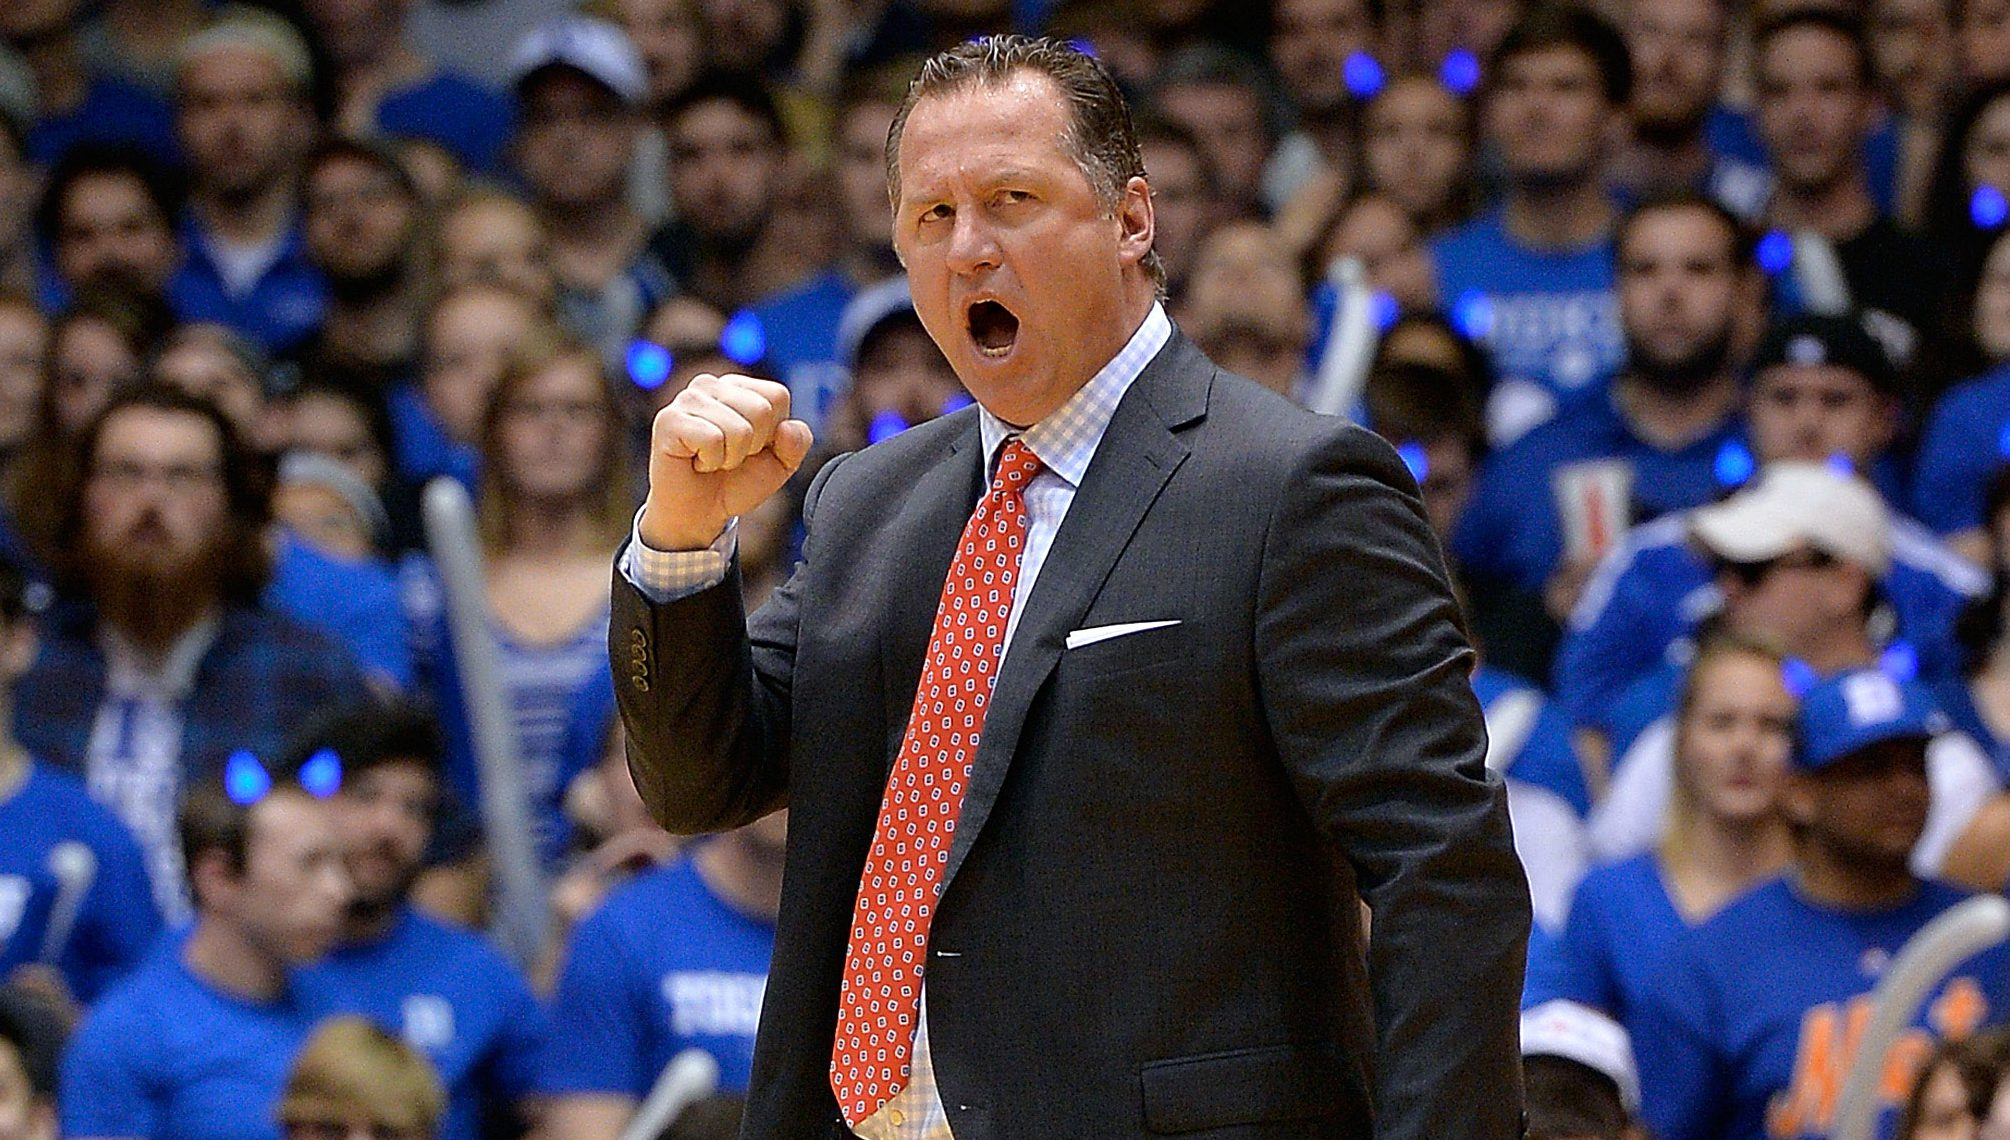 DURHAM, NC - FEBRUARY 06: Head coach Mark Gottfried of the North Carolina State Wolfpack reacts during their game against the Duke Blue Devils at Cameron Indoor Stadium on February 6, 2016 in Durham, North Carolina. (Photo by Grant Halverson/Getty Images)